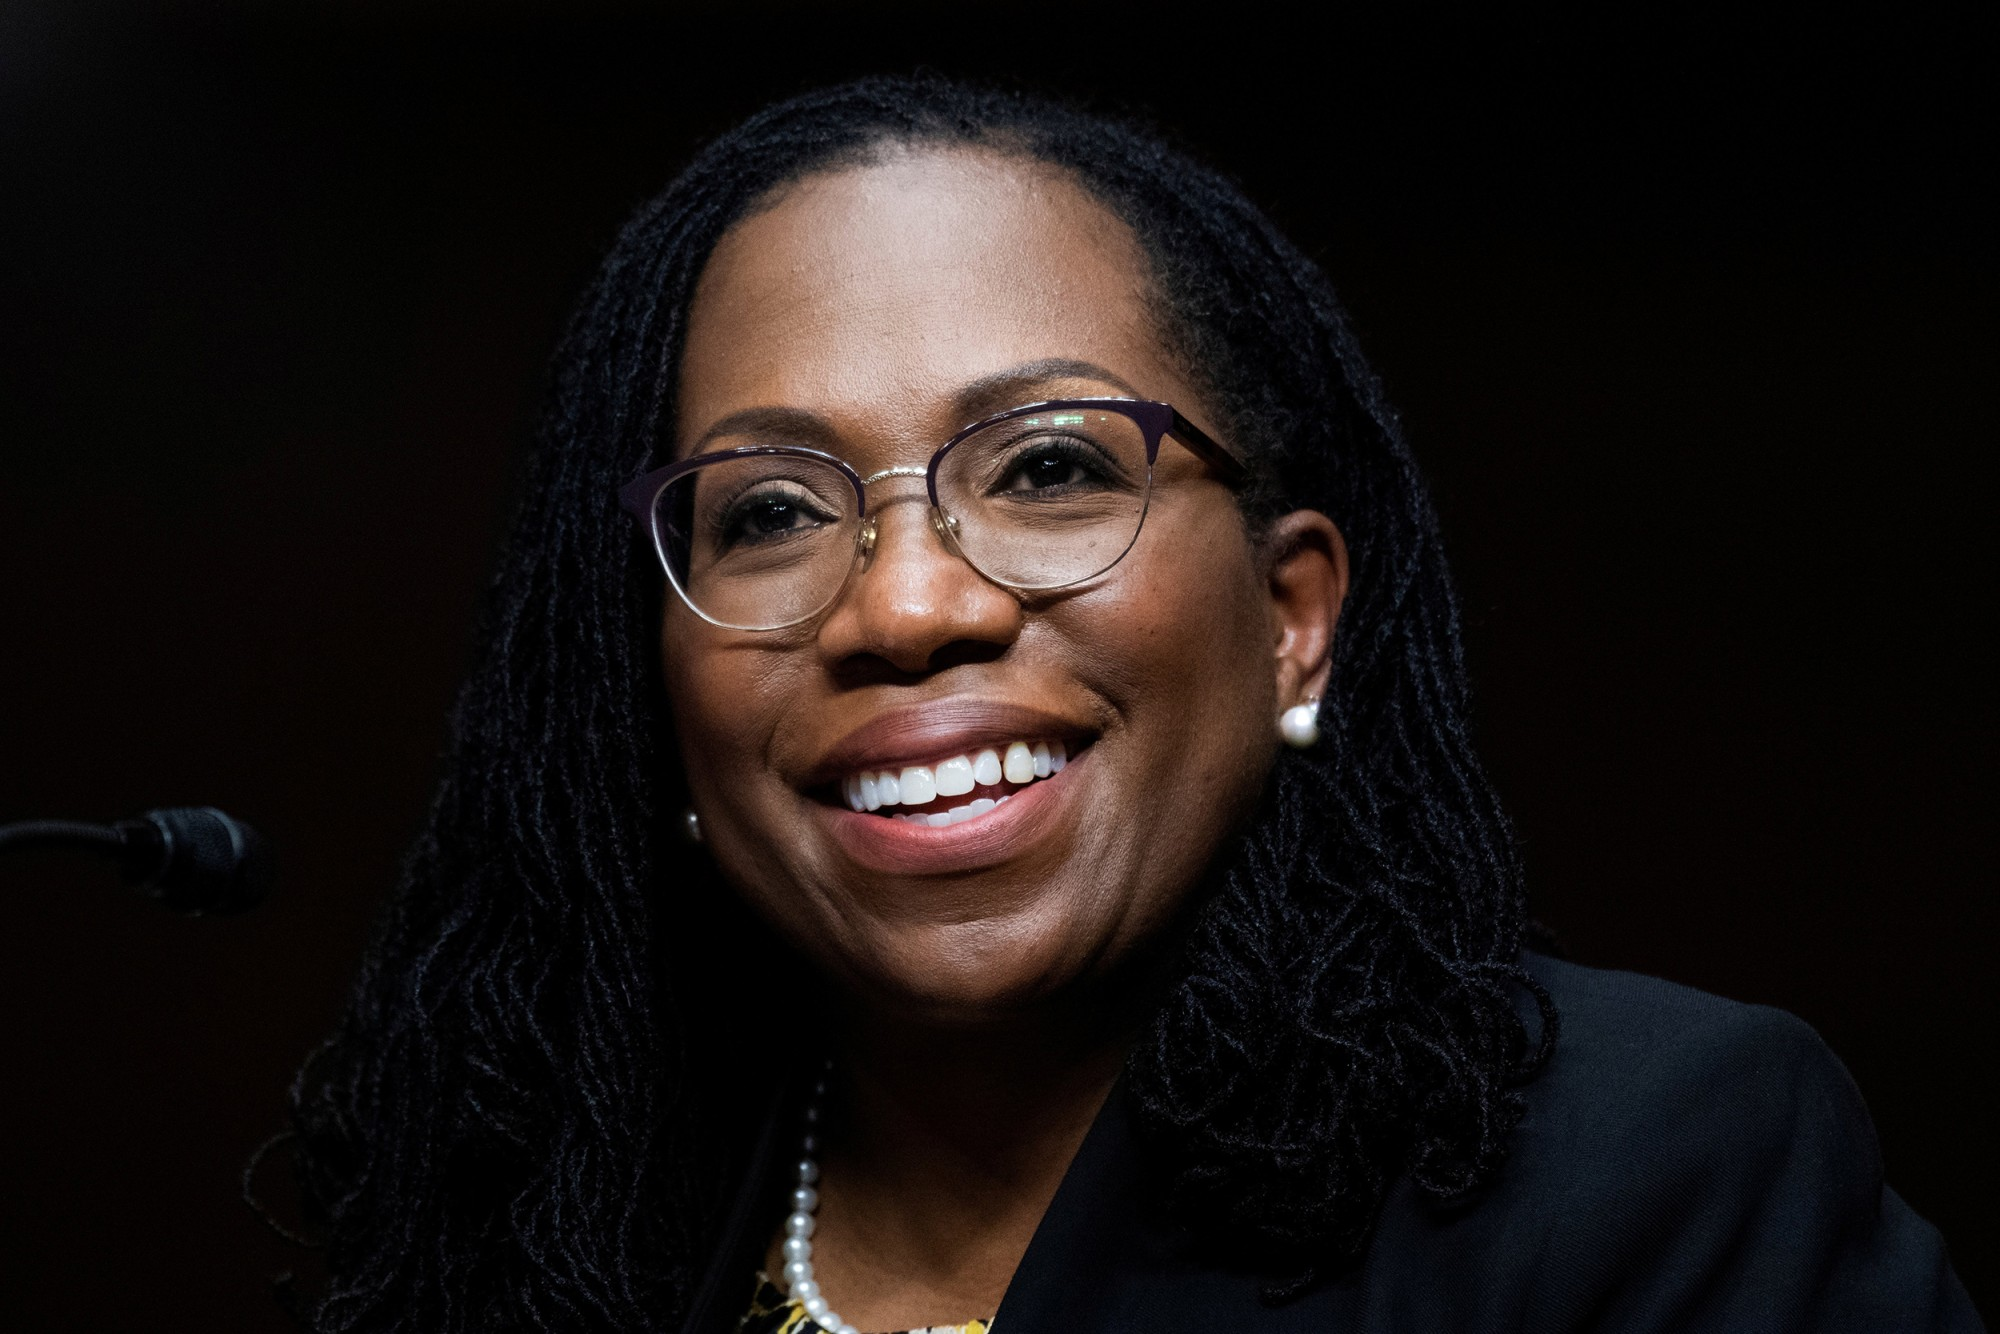 Senate Confirms Judge Ketanji Brown Jackson to Fill Vacancy on Powerful DC Appellate Court